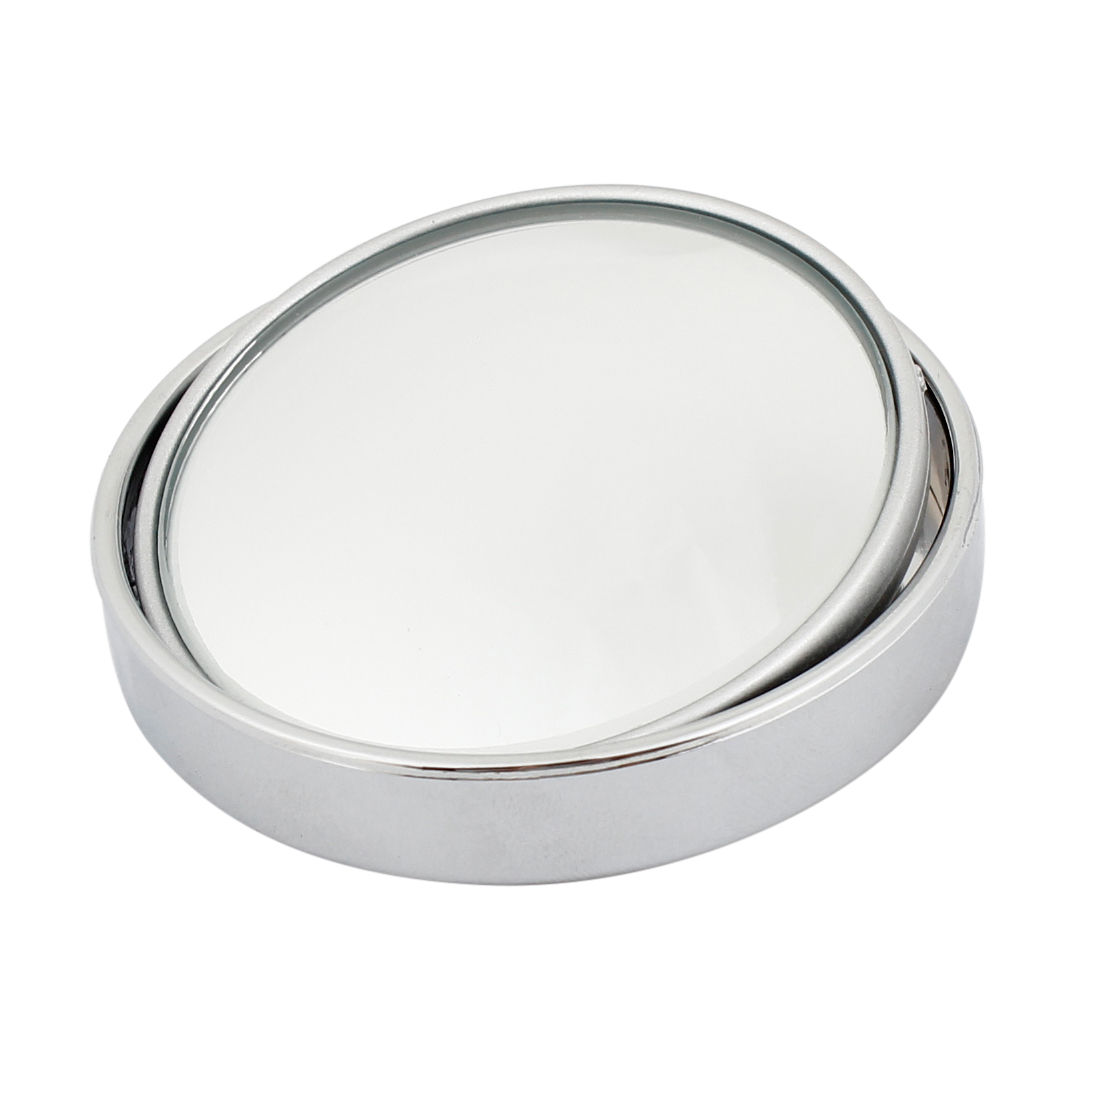 Adhesive Back Silver Tone Frame Blind Spot Mirror for Auto